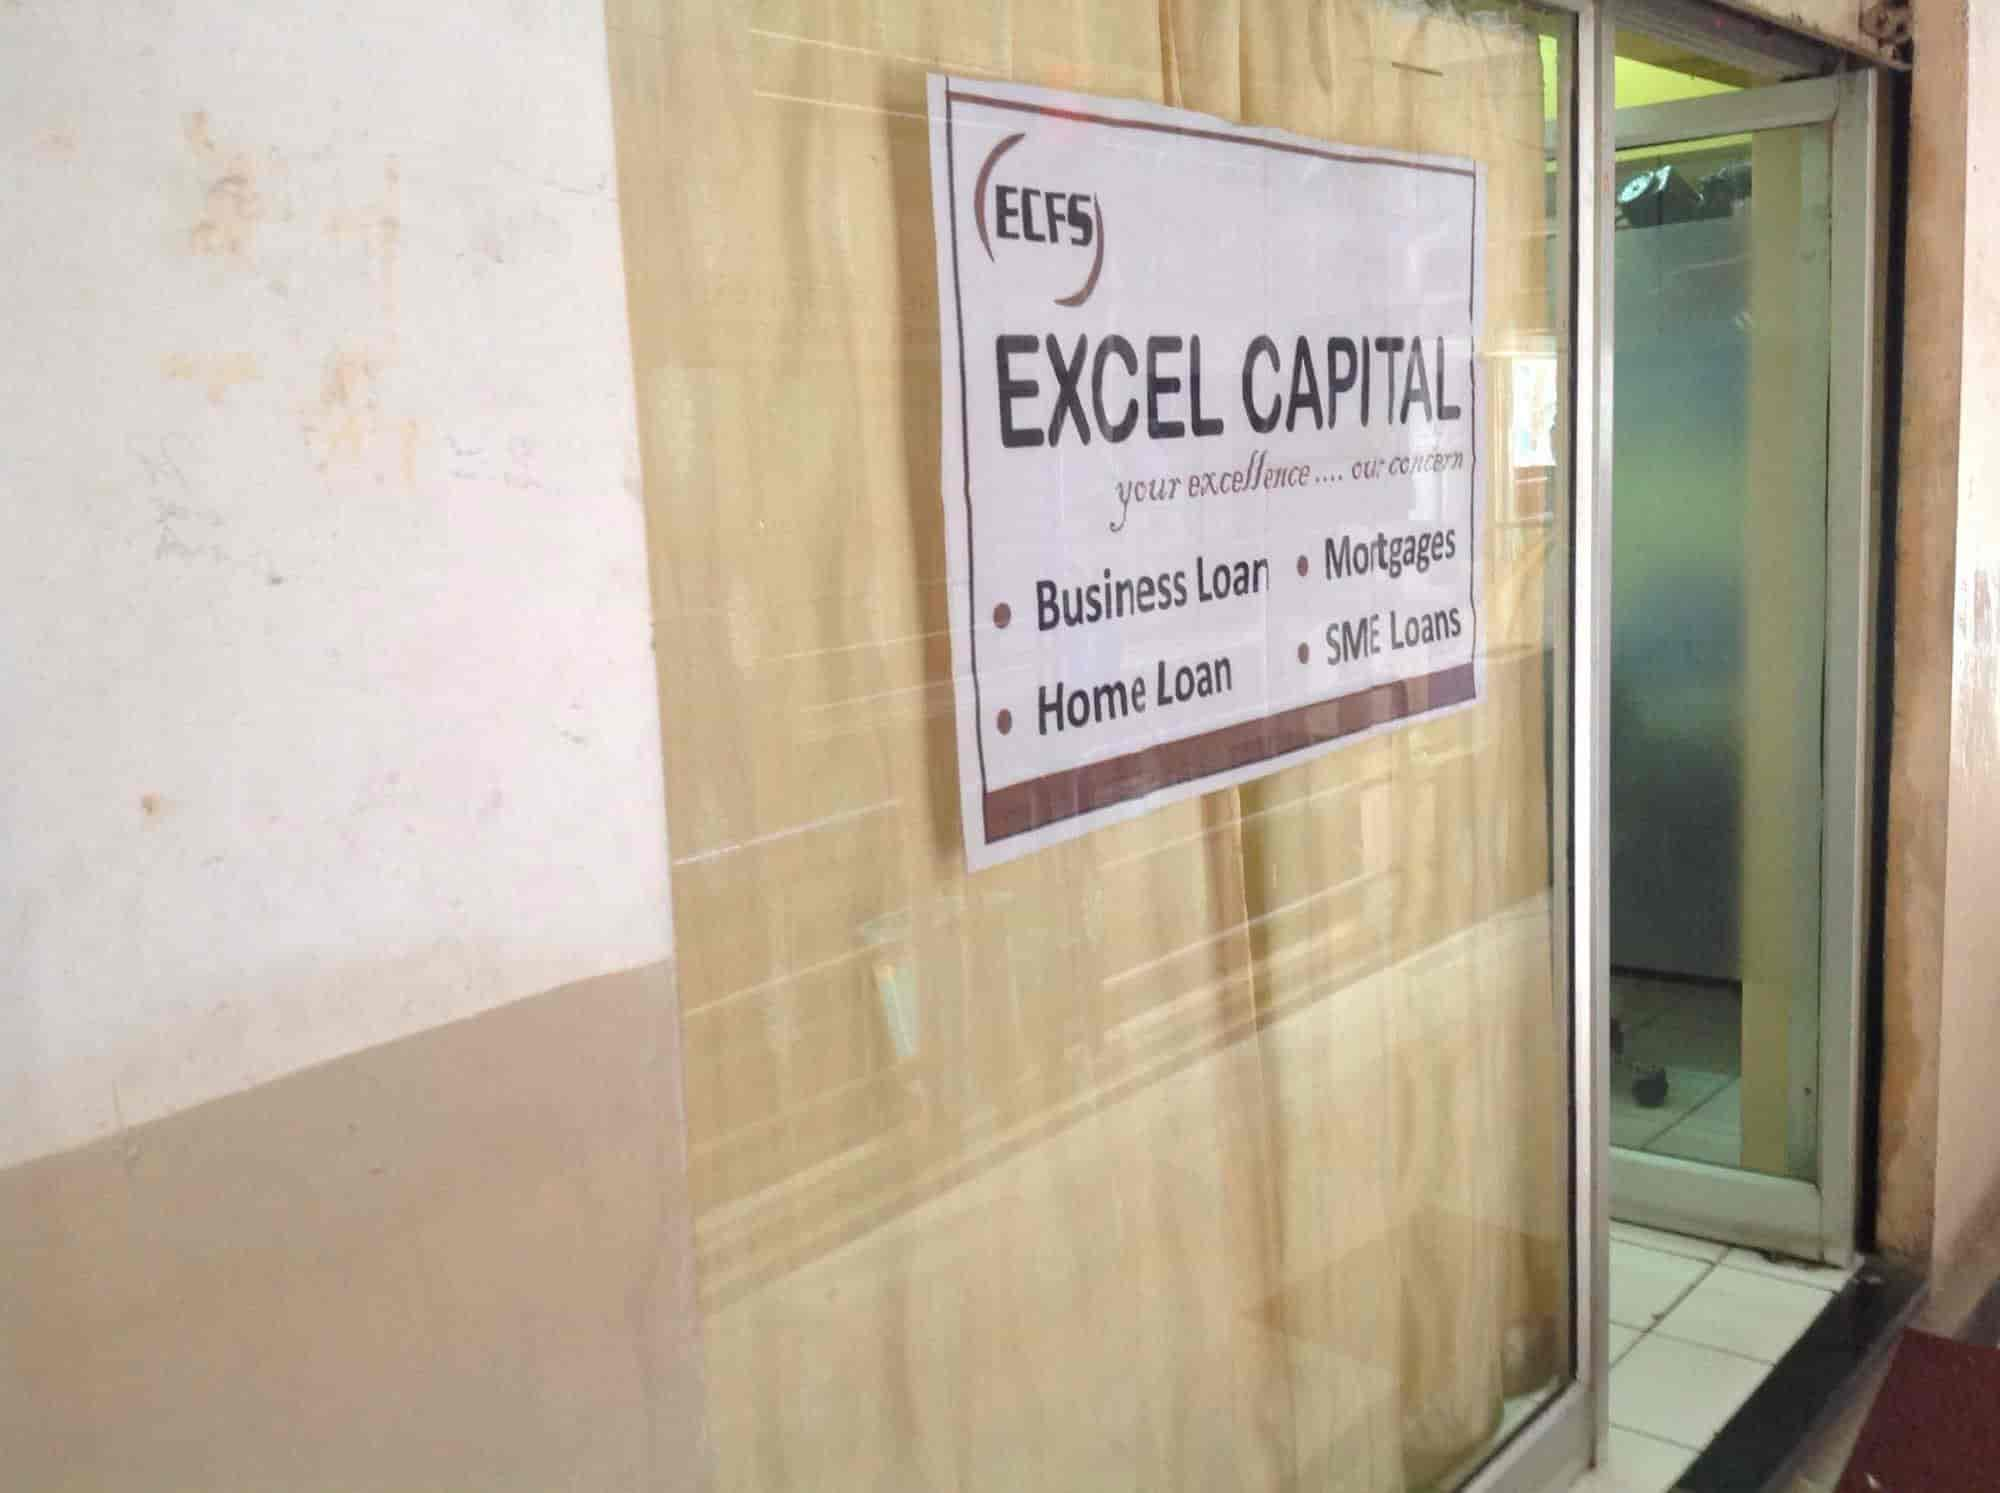 excel capital financial services mg road finance companies in